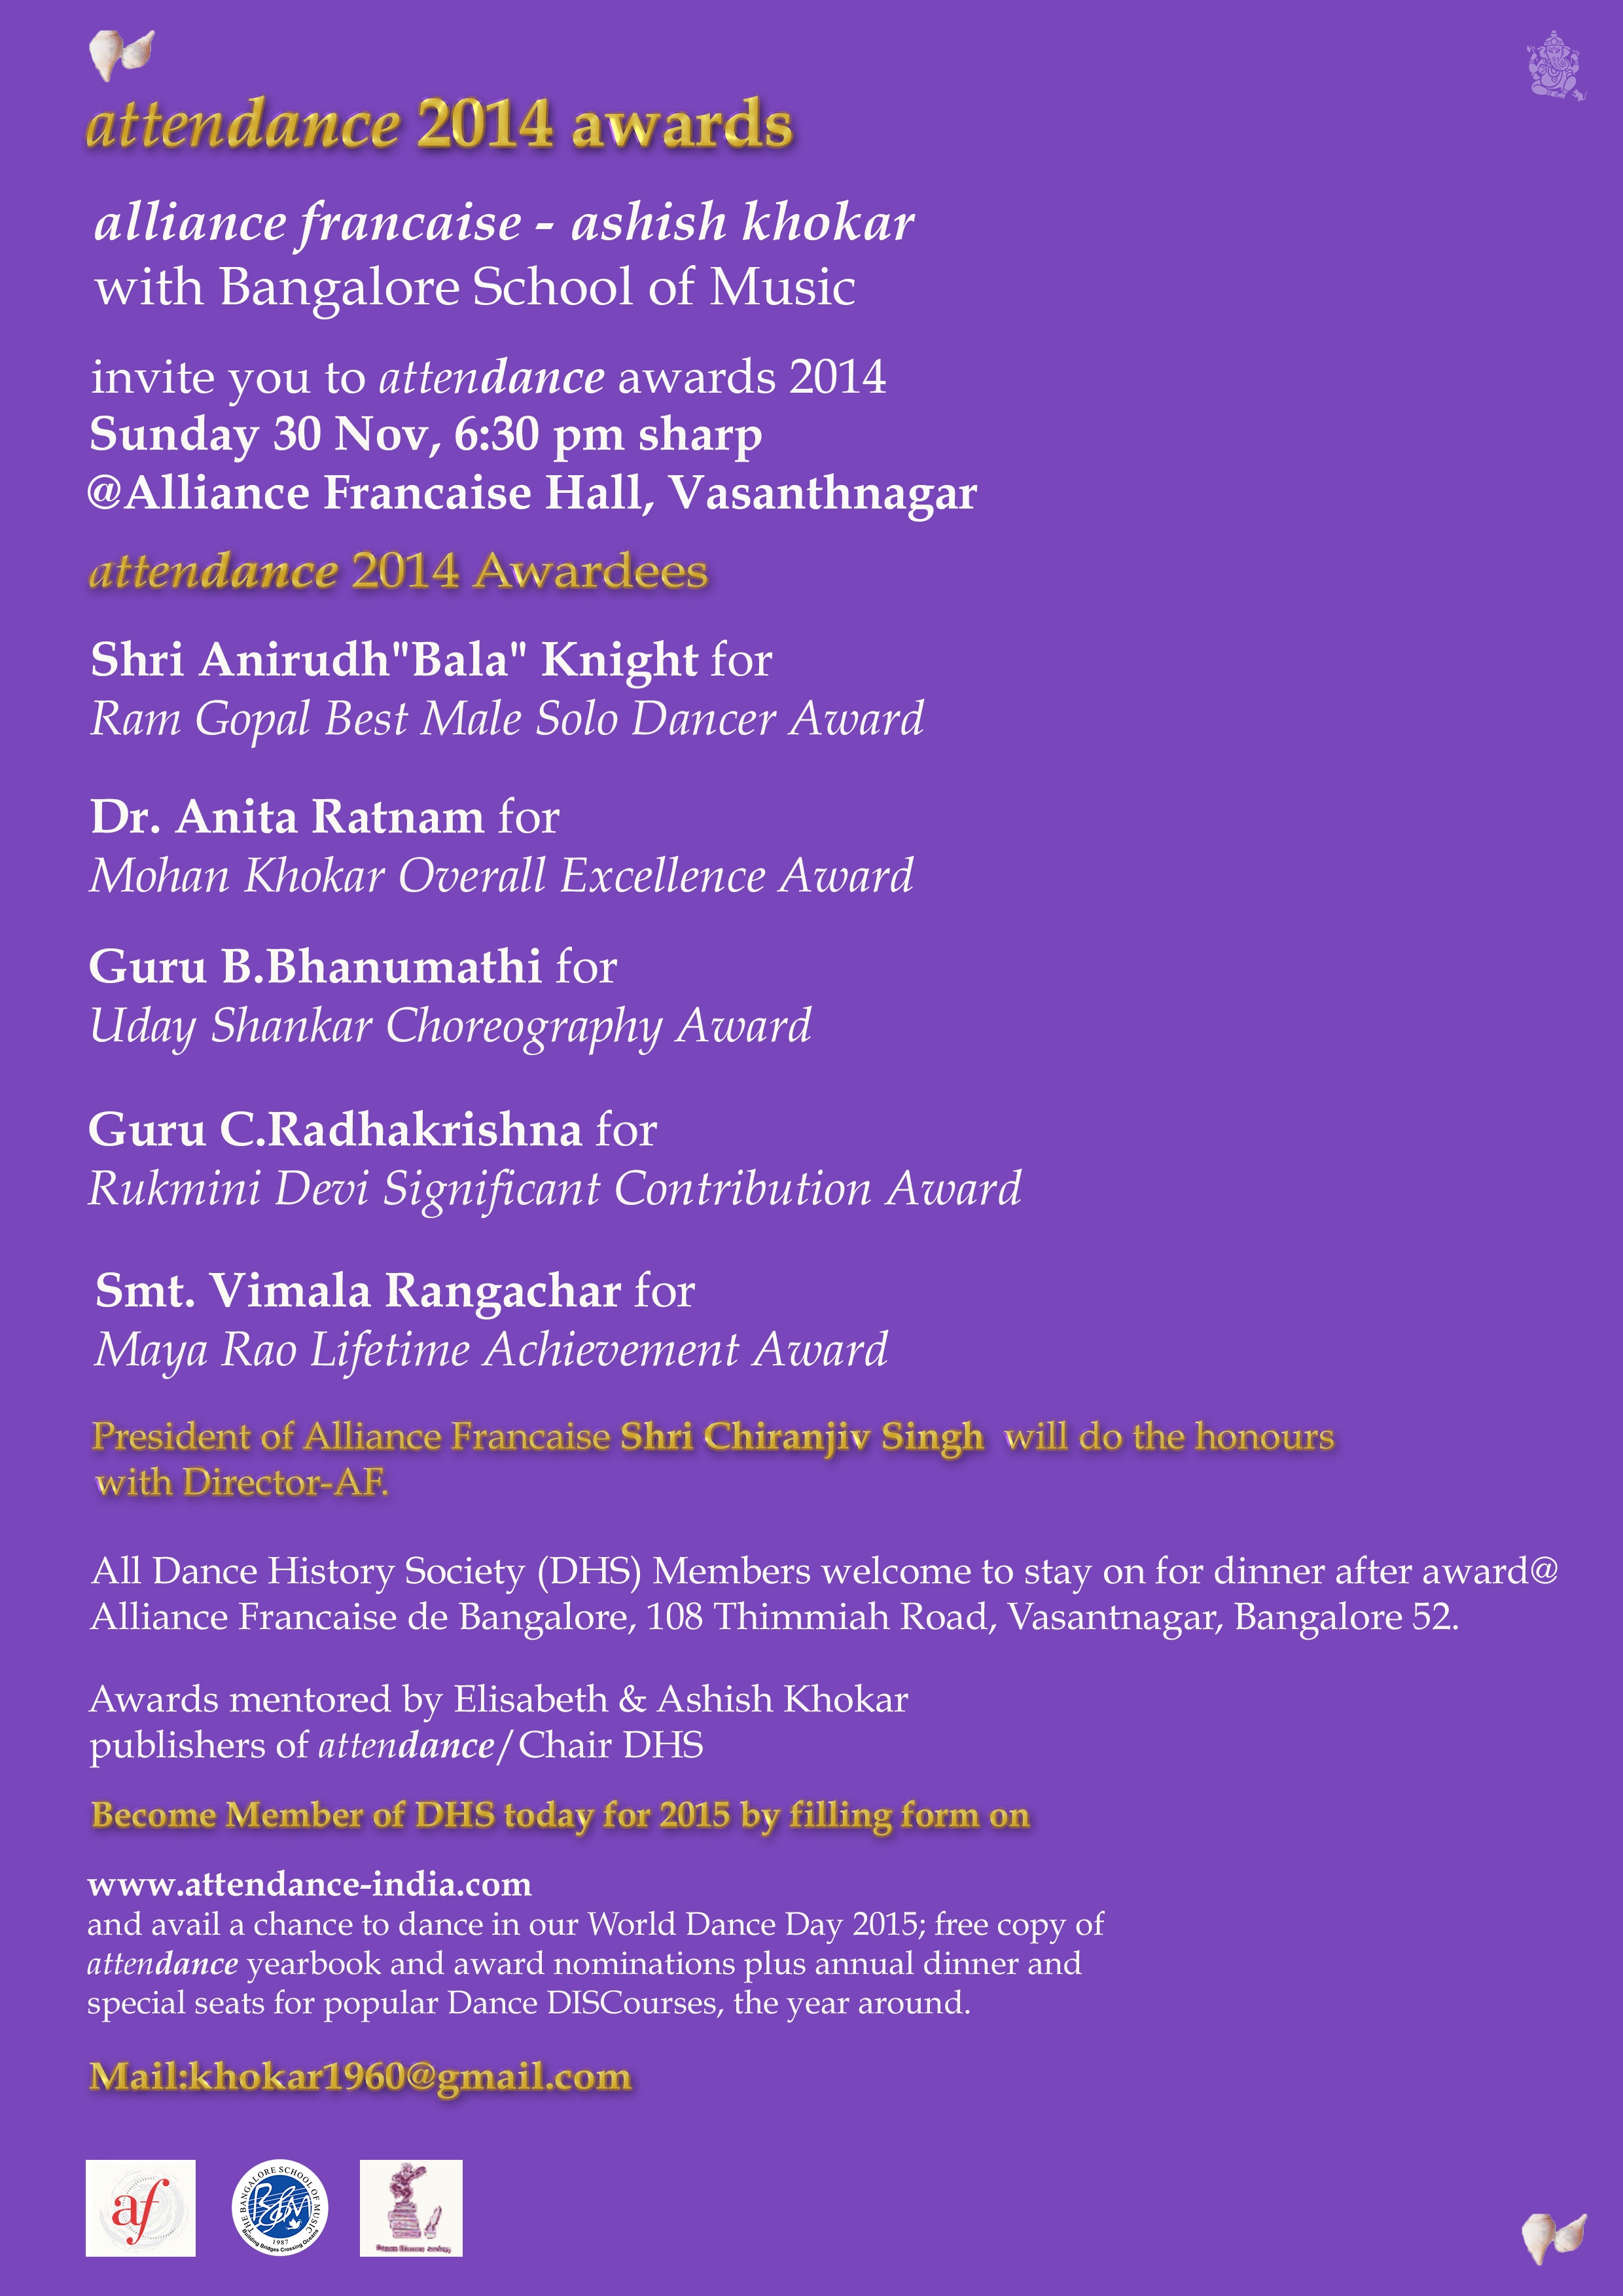 attendance annual dance awards bharathanatyam and the attendance awards 2014 on 30 nov